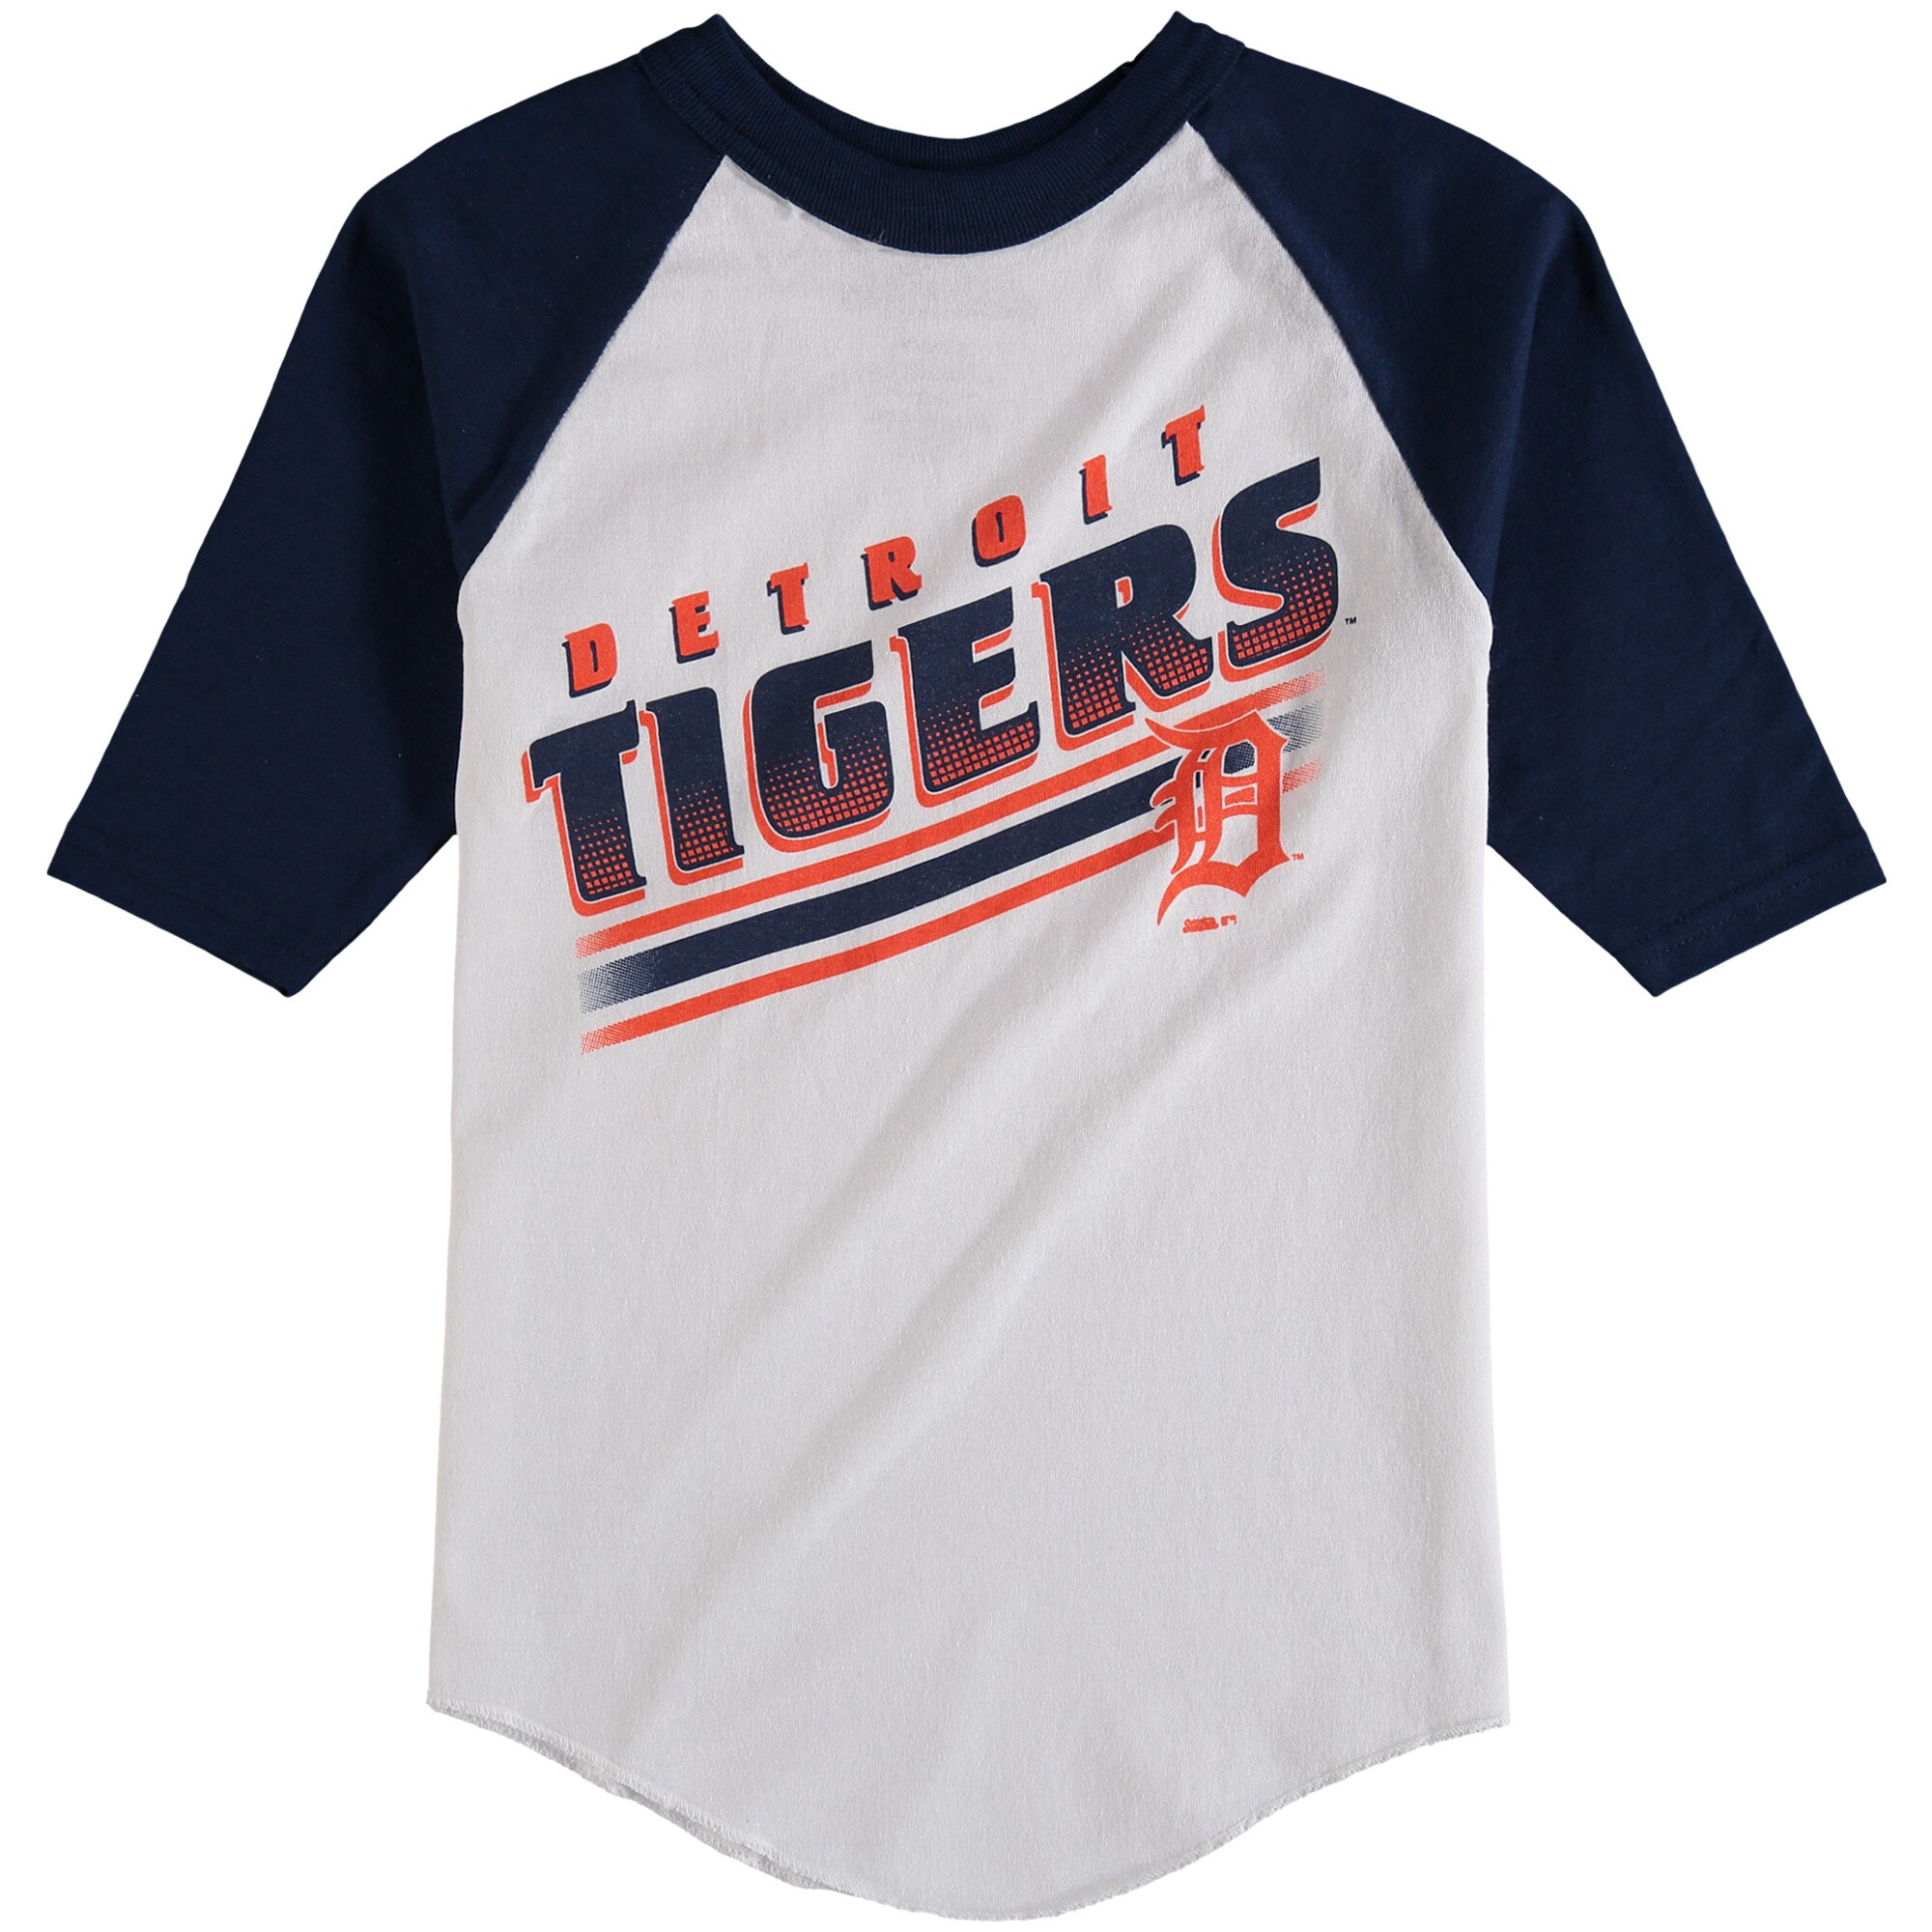 Detroit Tigers Stitches Youth 3/4-Sleeve Raglan T-Shirt - White/Navy